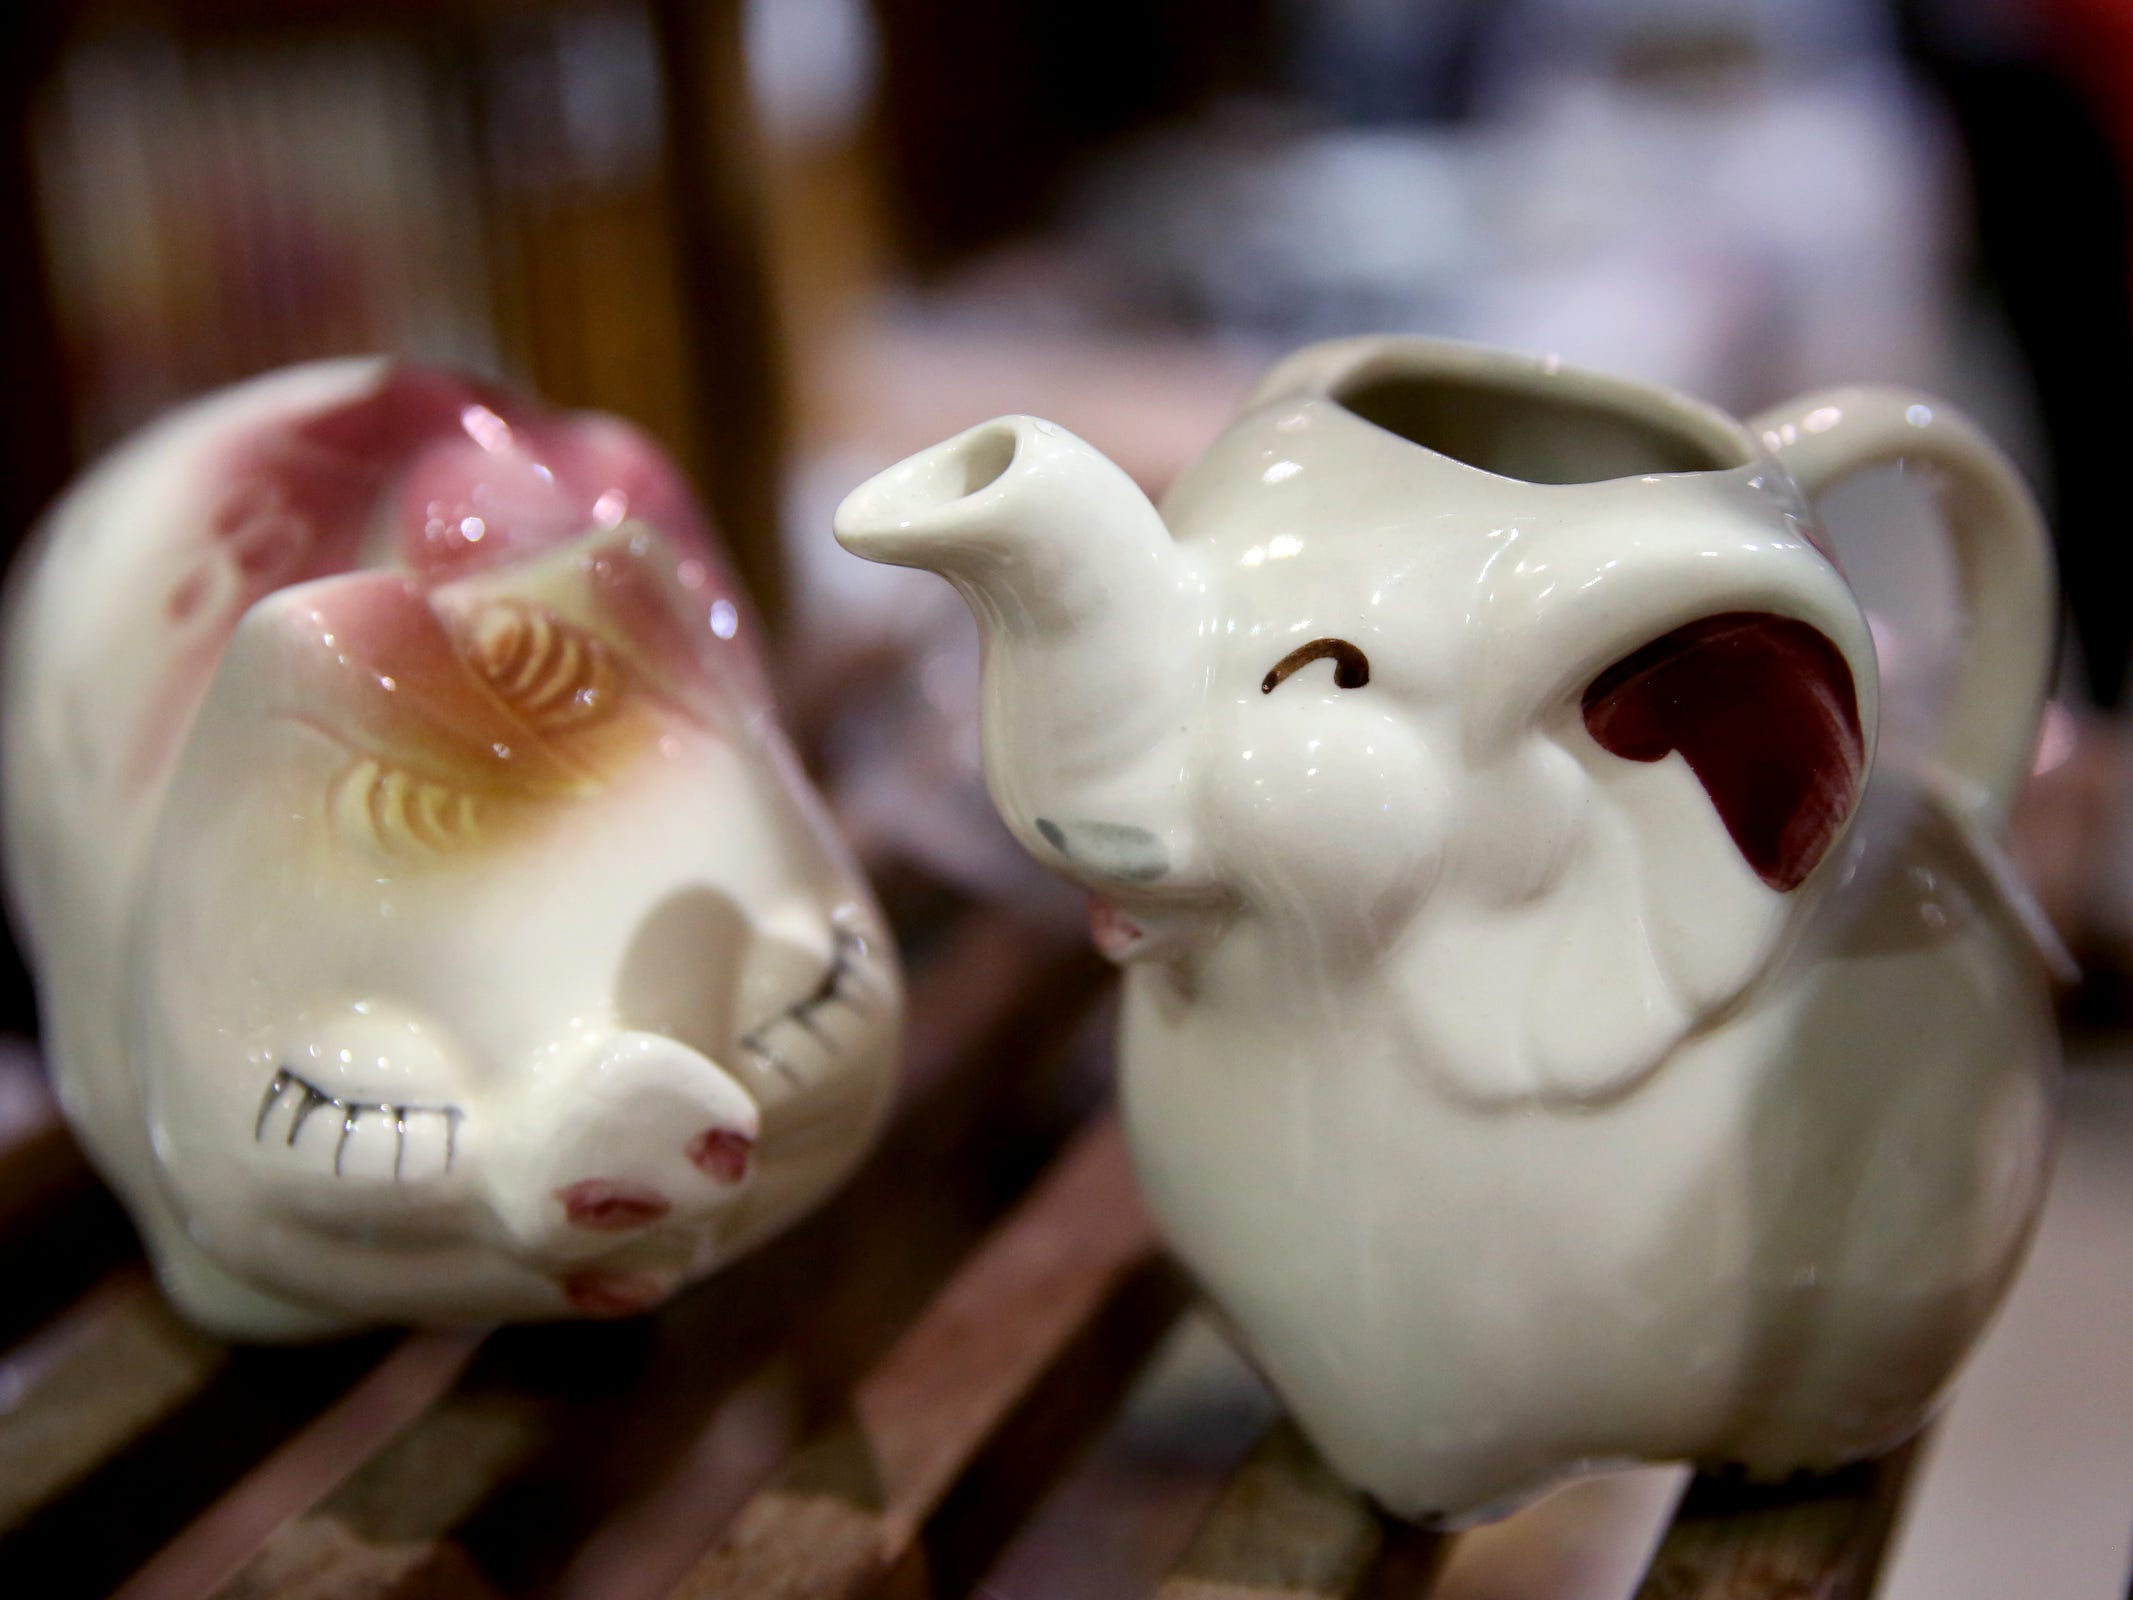 Ceramics are available during The Great Junk Hunt, a traveling vintage market, at the Oregon State Fairgrounds in Salem on April 13, 2019.